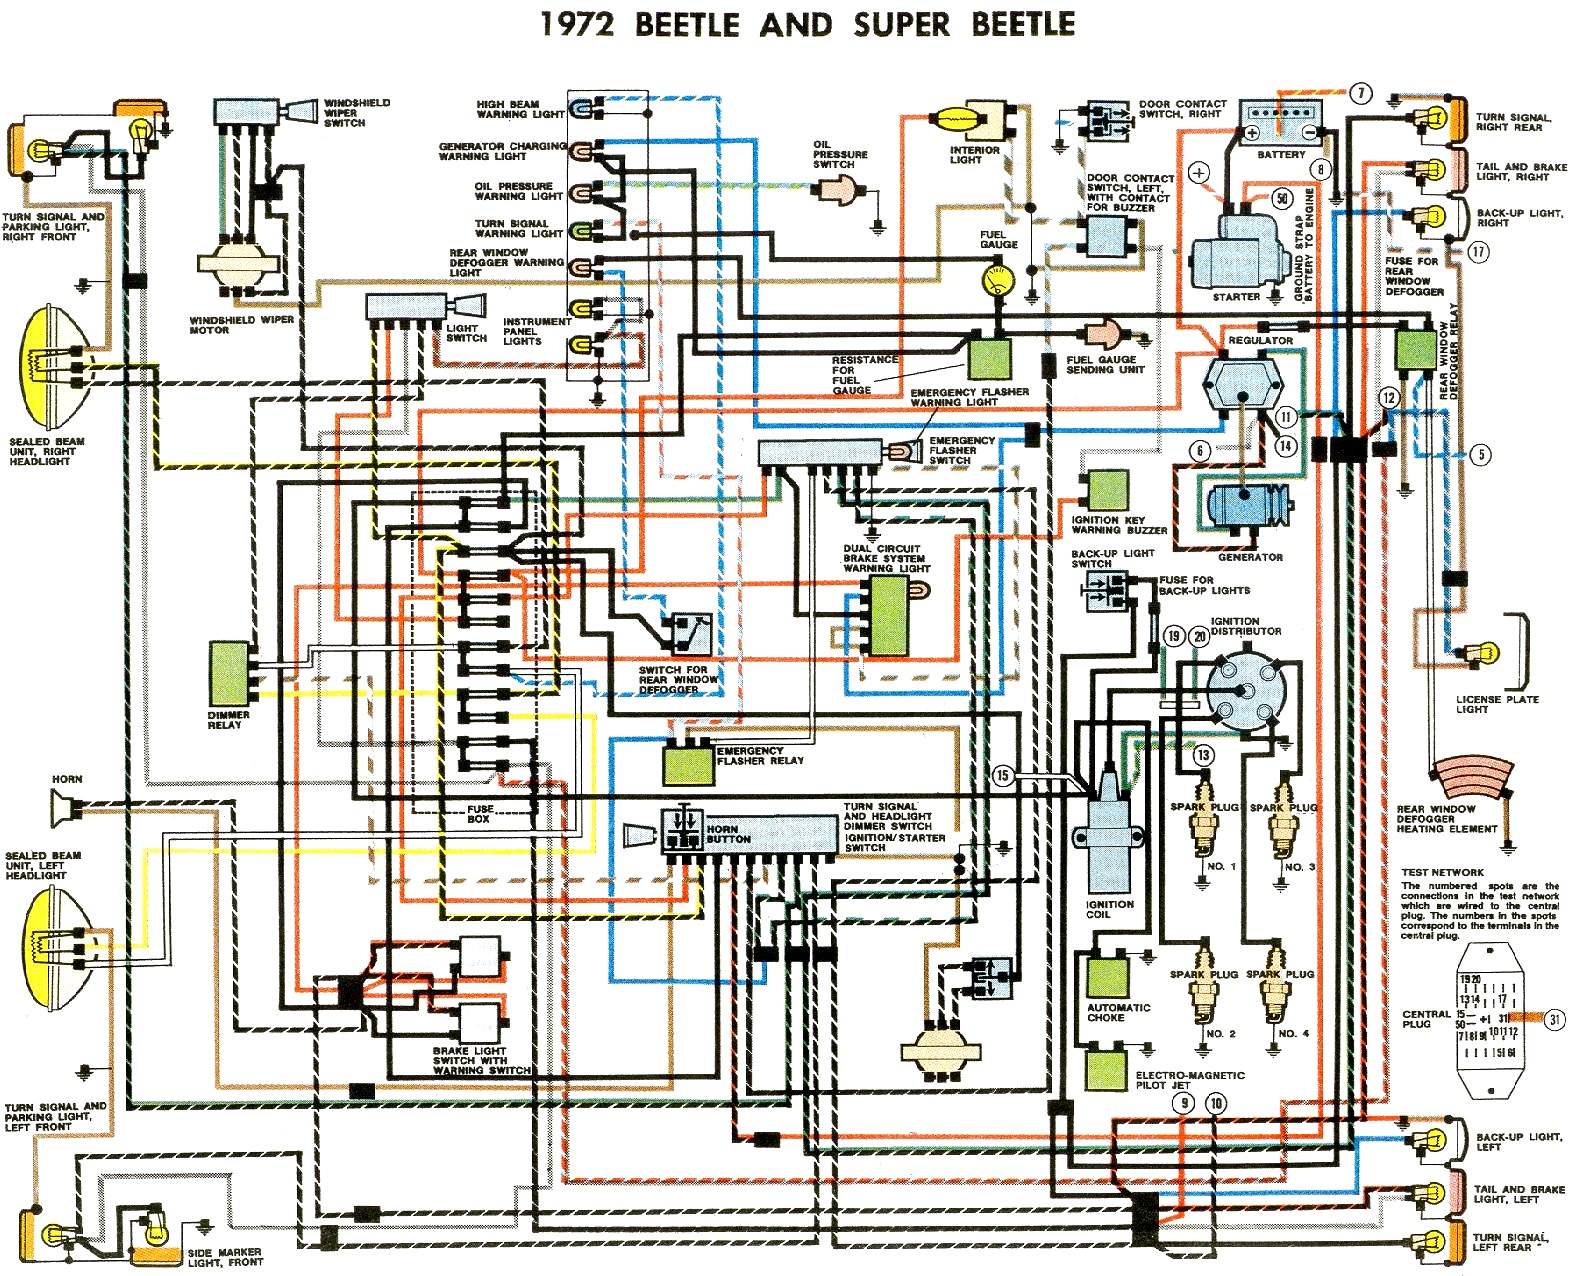 bug_72 1972 beetle wiring diagram thegoldenbug com 1972 beetle wiring diagram at letsshop.co